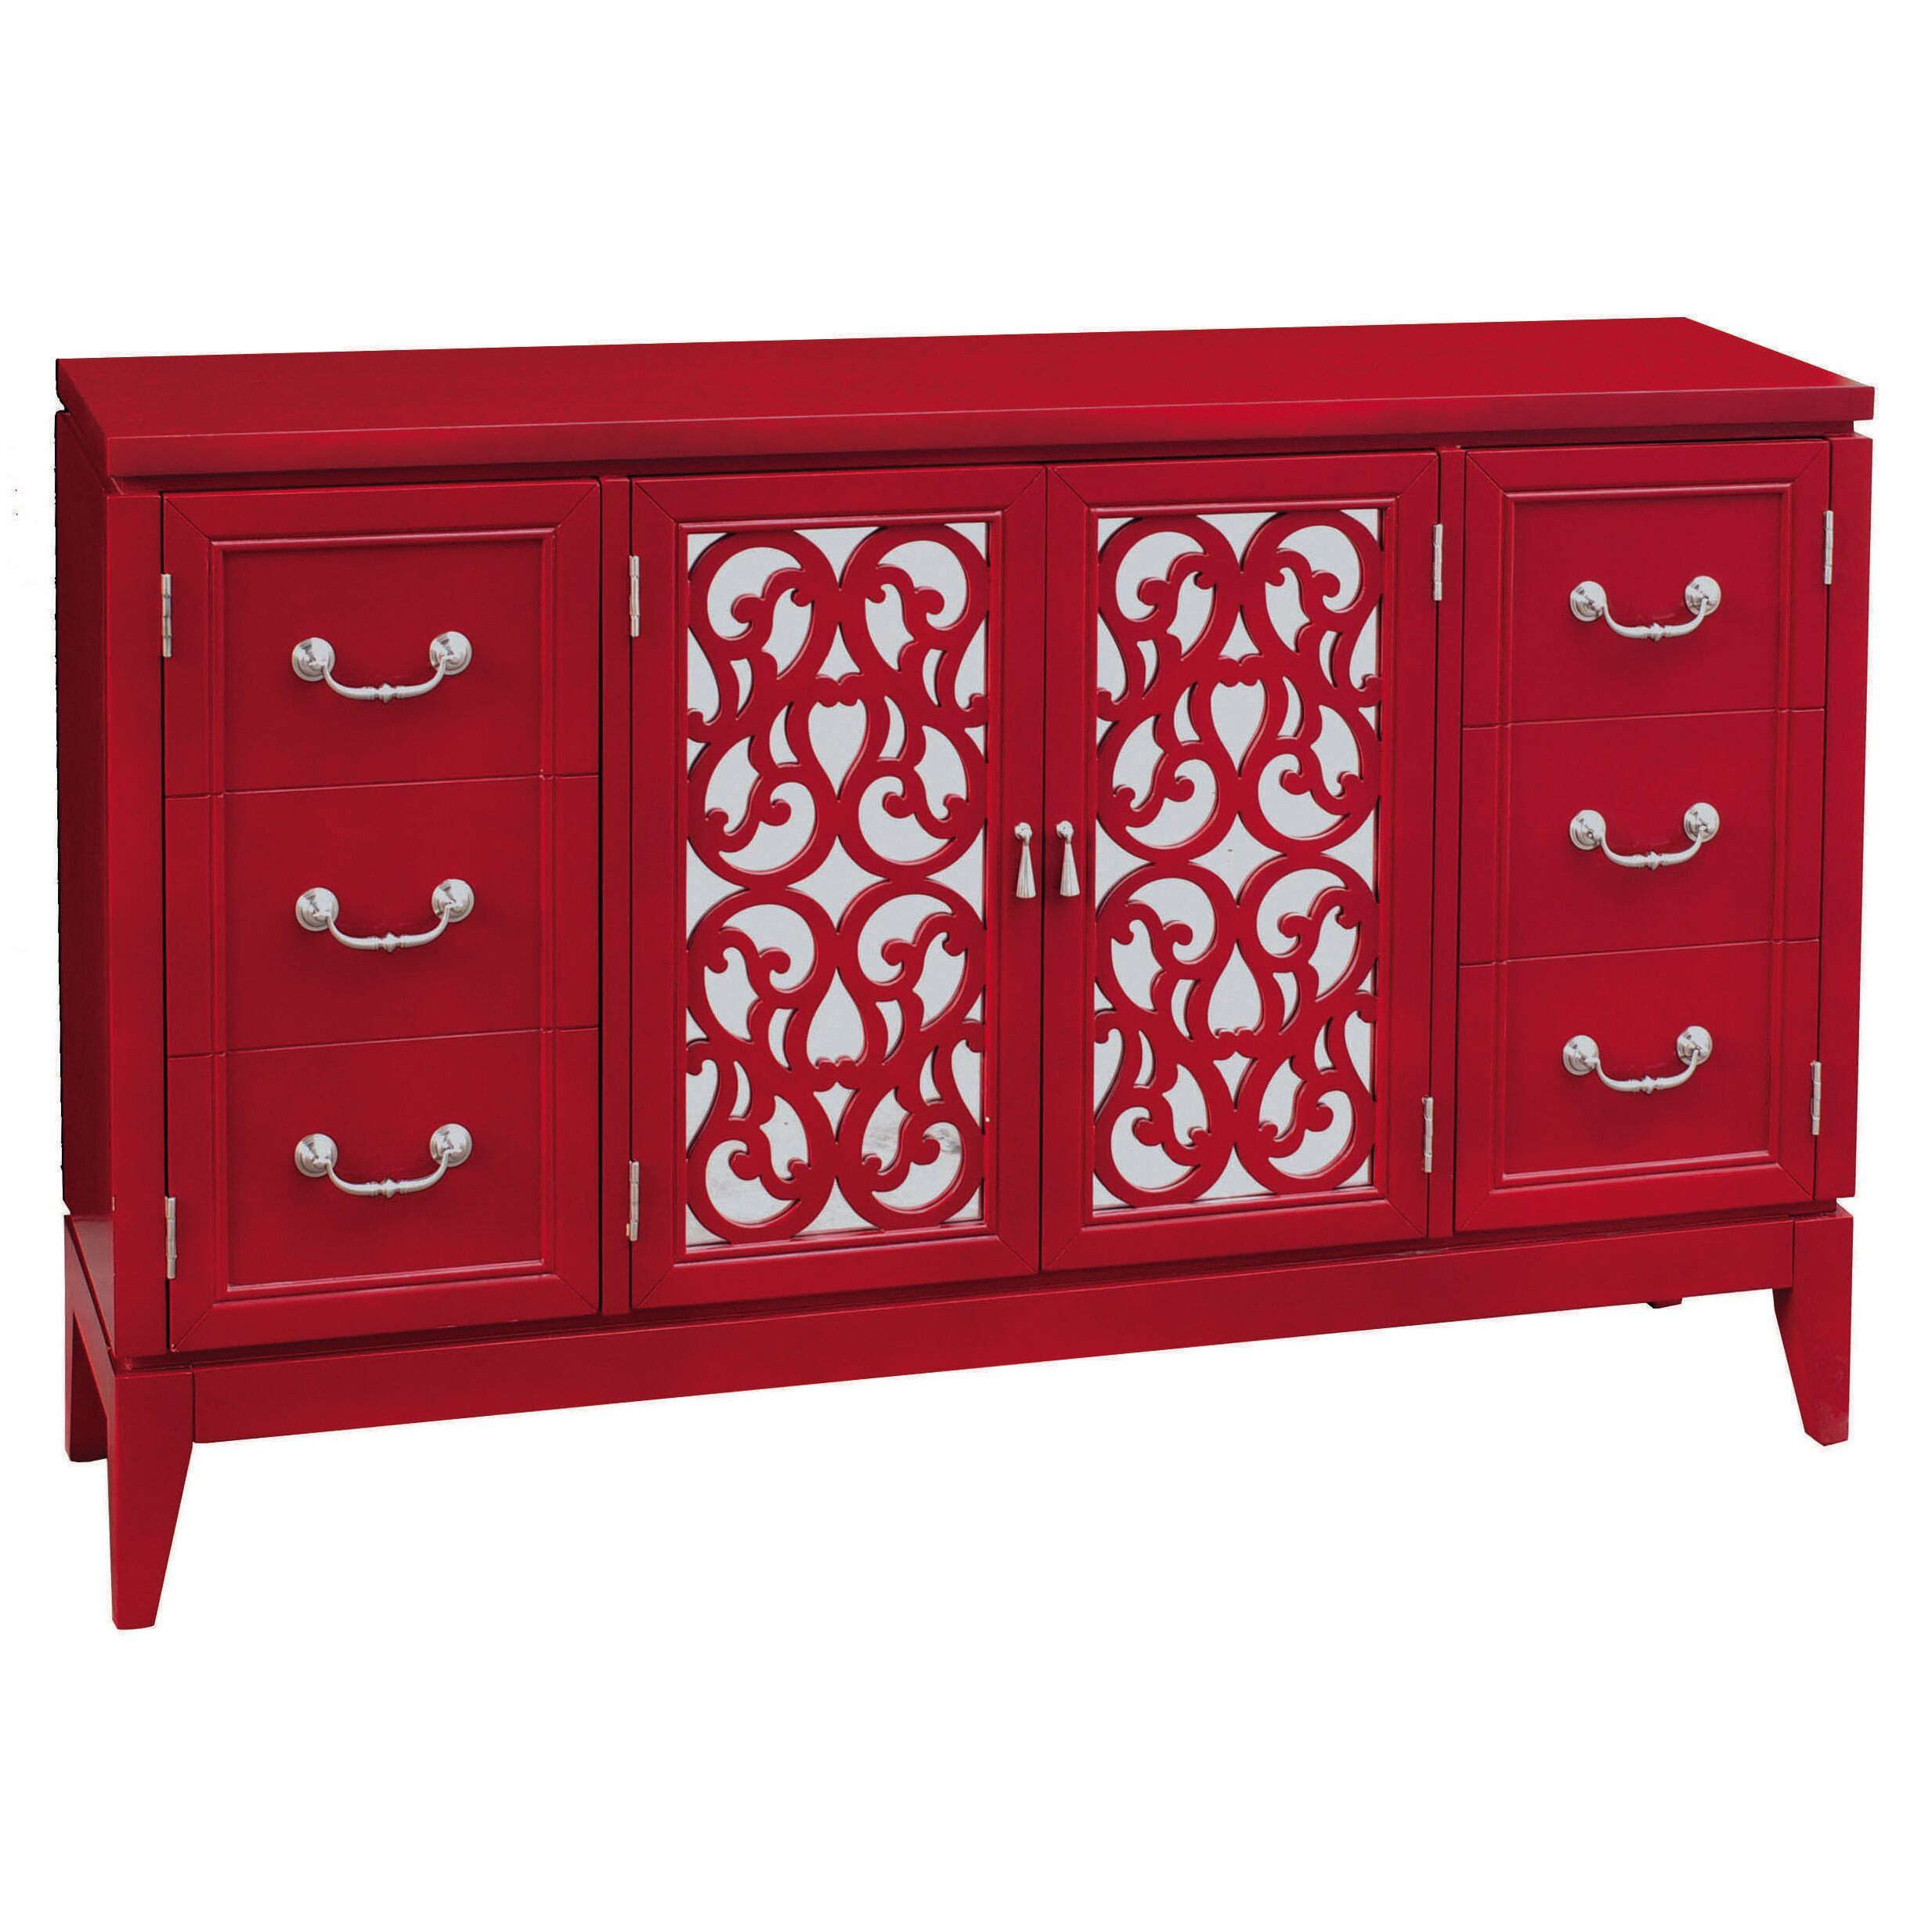 Pulaski console 4 door cabinet reviews wayfair for Door furniture